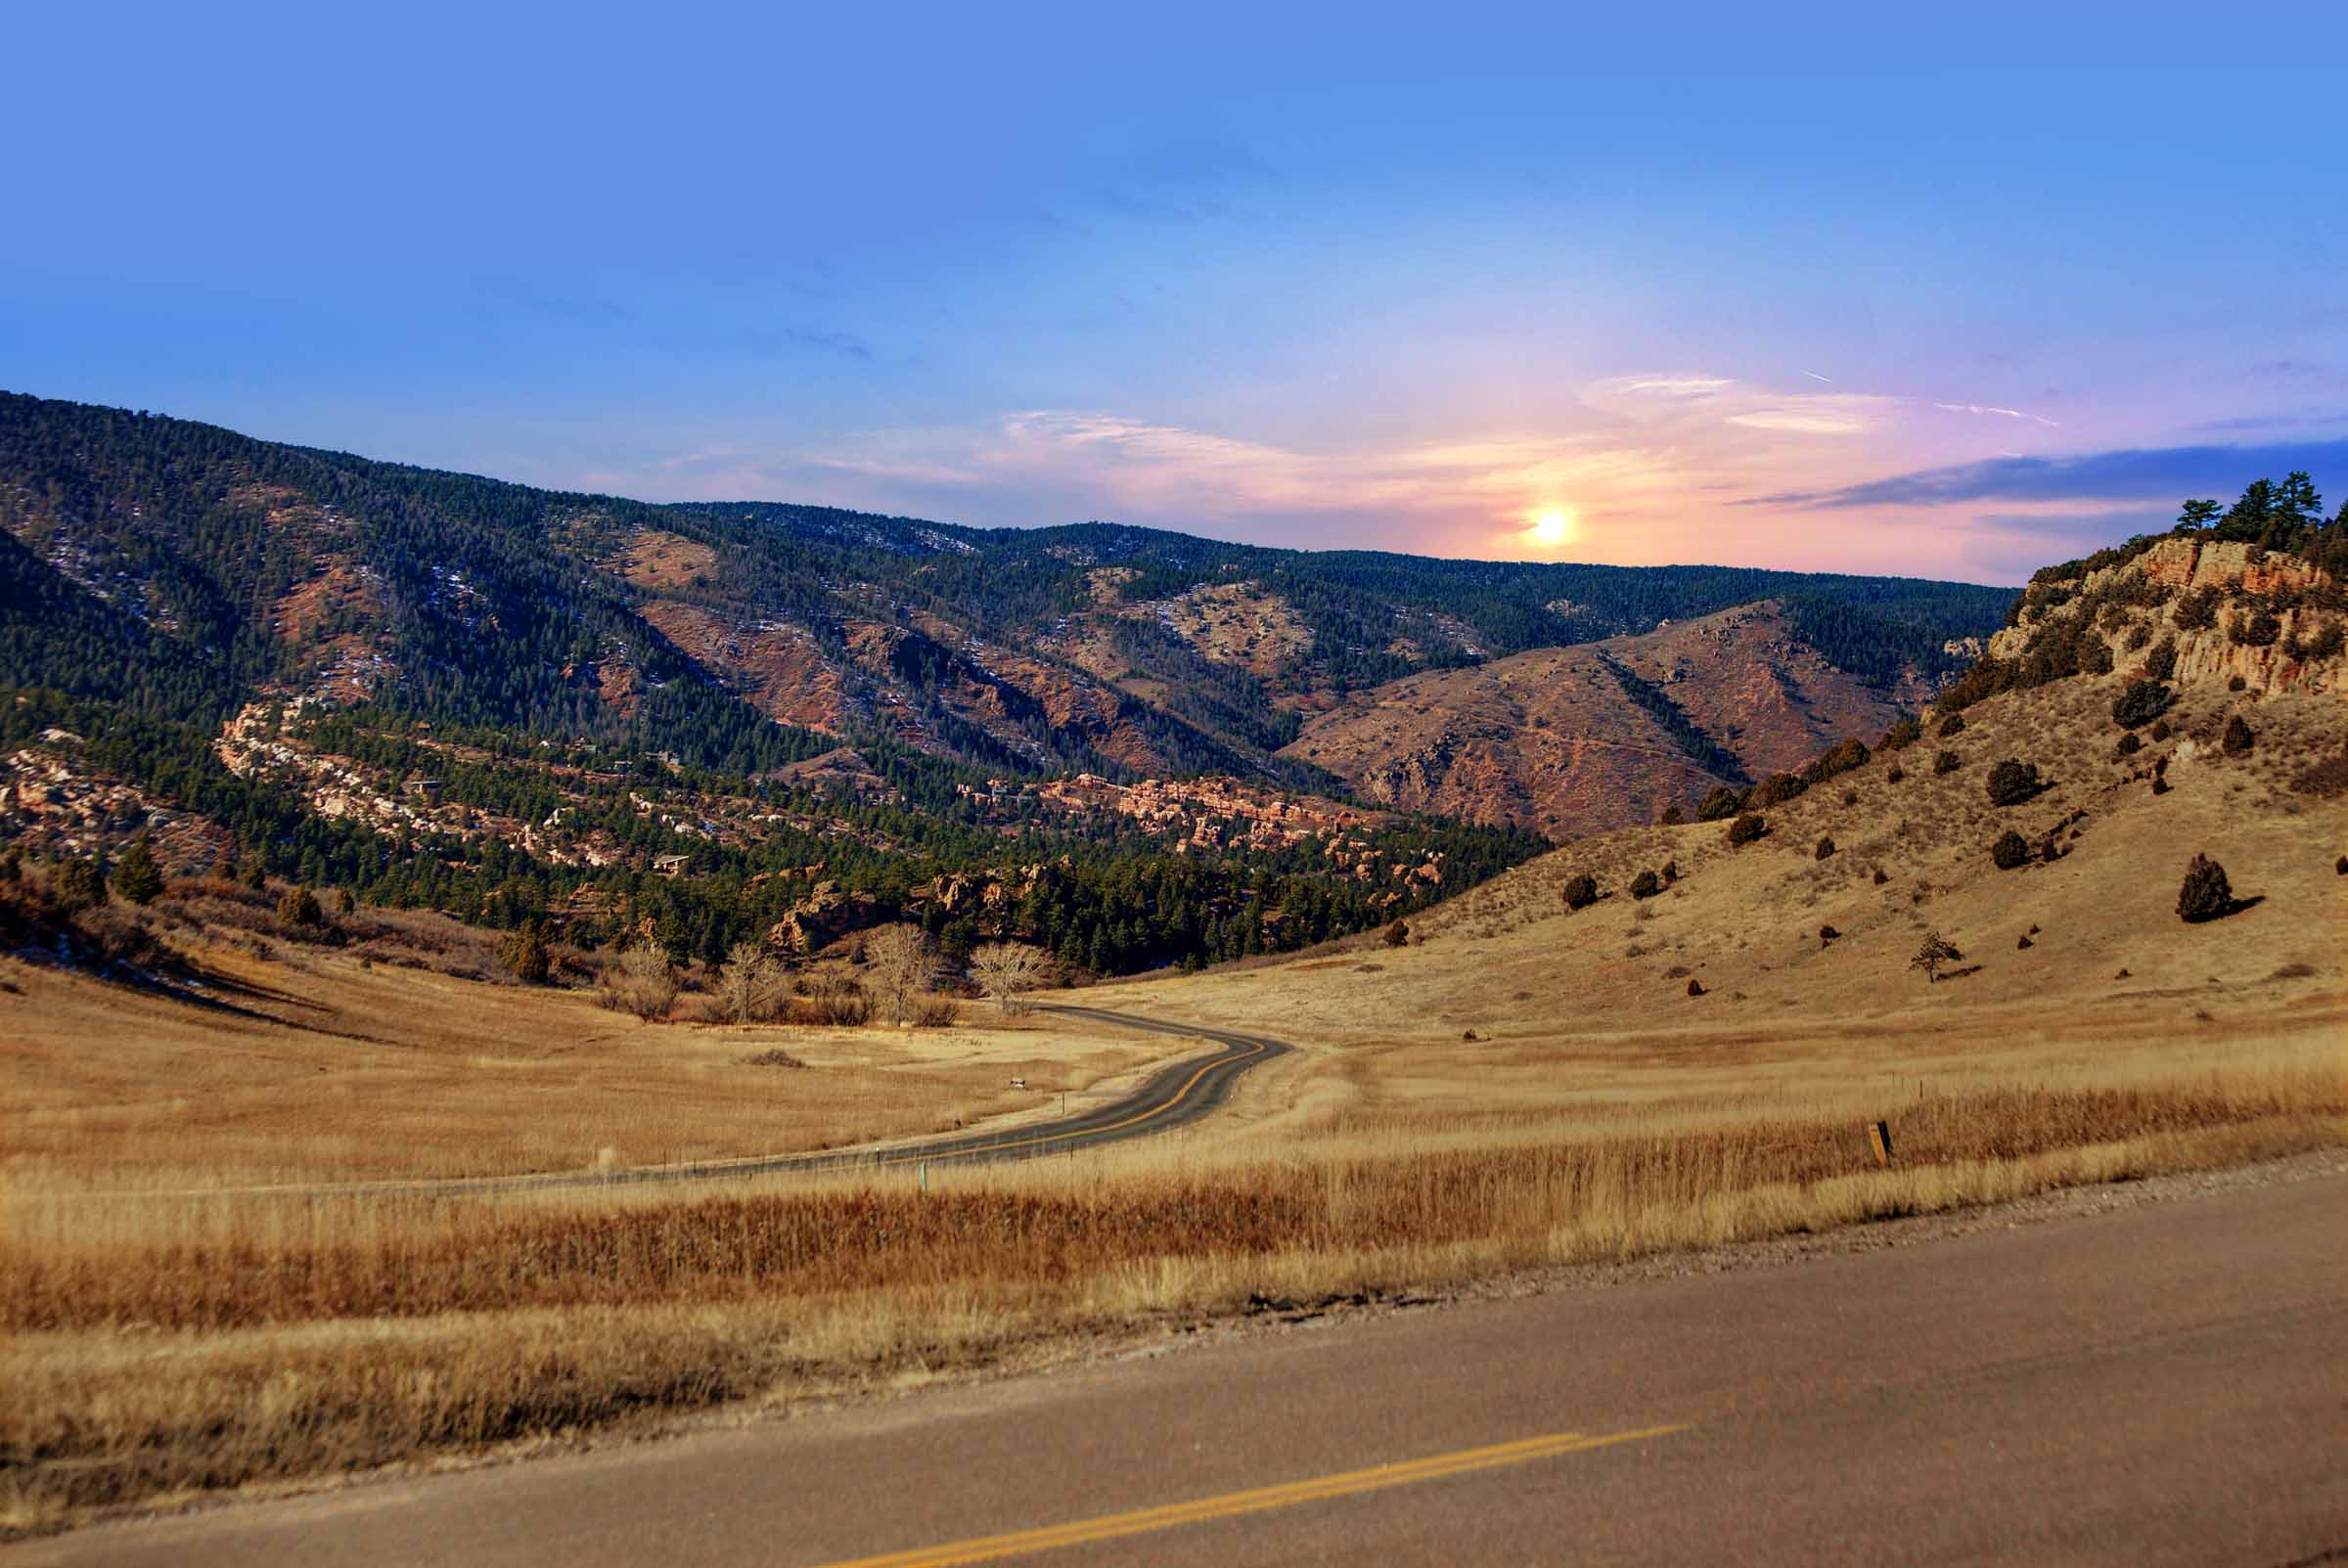 Larkspur, Colorado - Established and new custom home neighborhoods along with large ranch and acreage properties weave together through forests of ponderosa pines, red rock spirals, and wide open spaces to create this exceptional place to live.